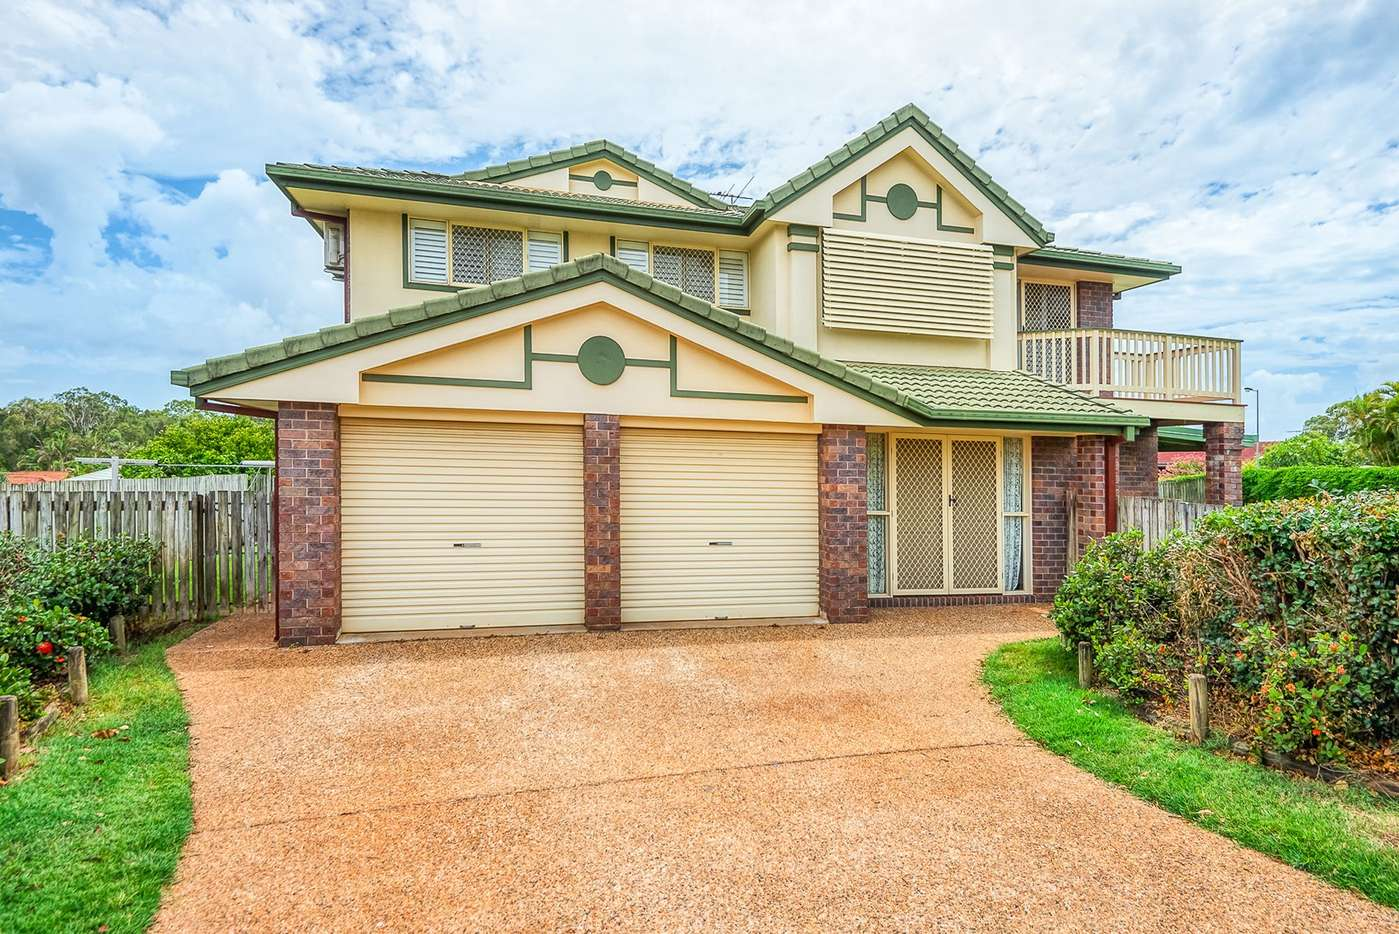 Main view of Homely house listing, 19 Byng Road, Birkdale, QLD 4159